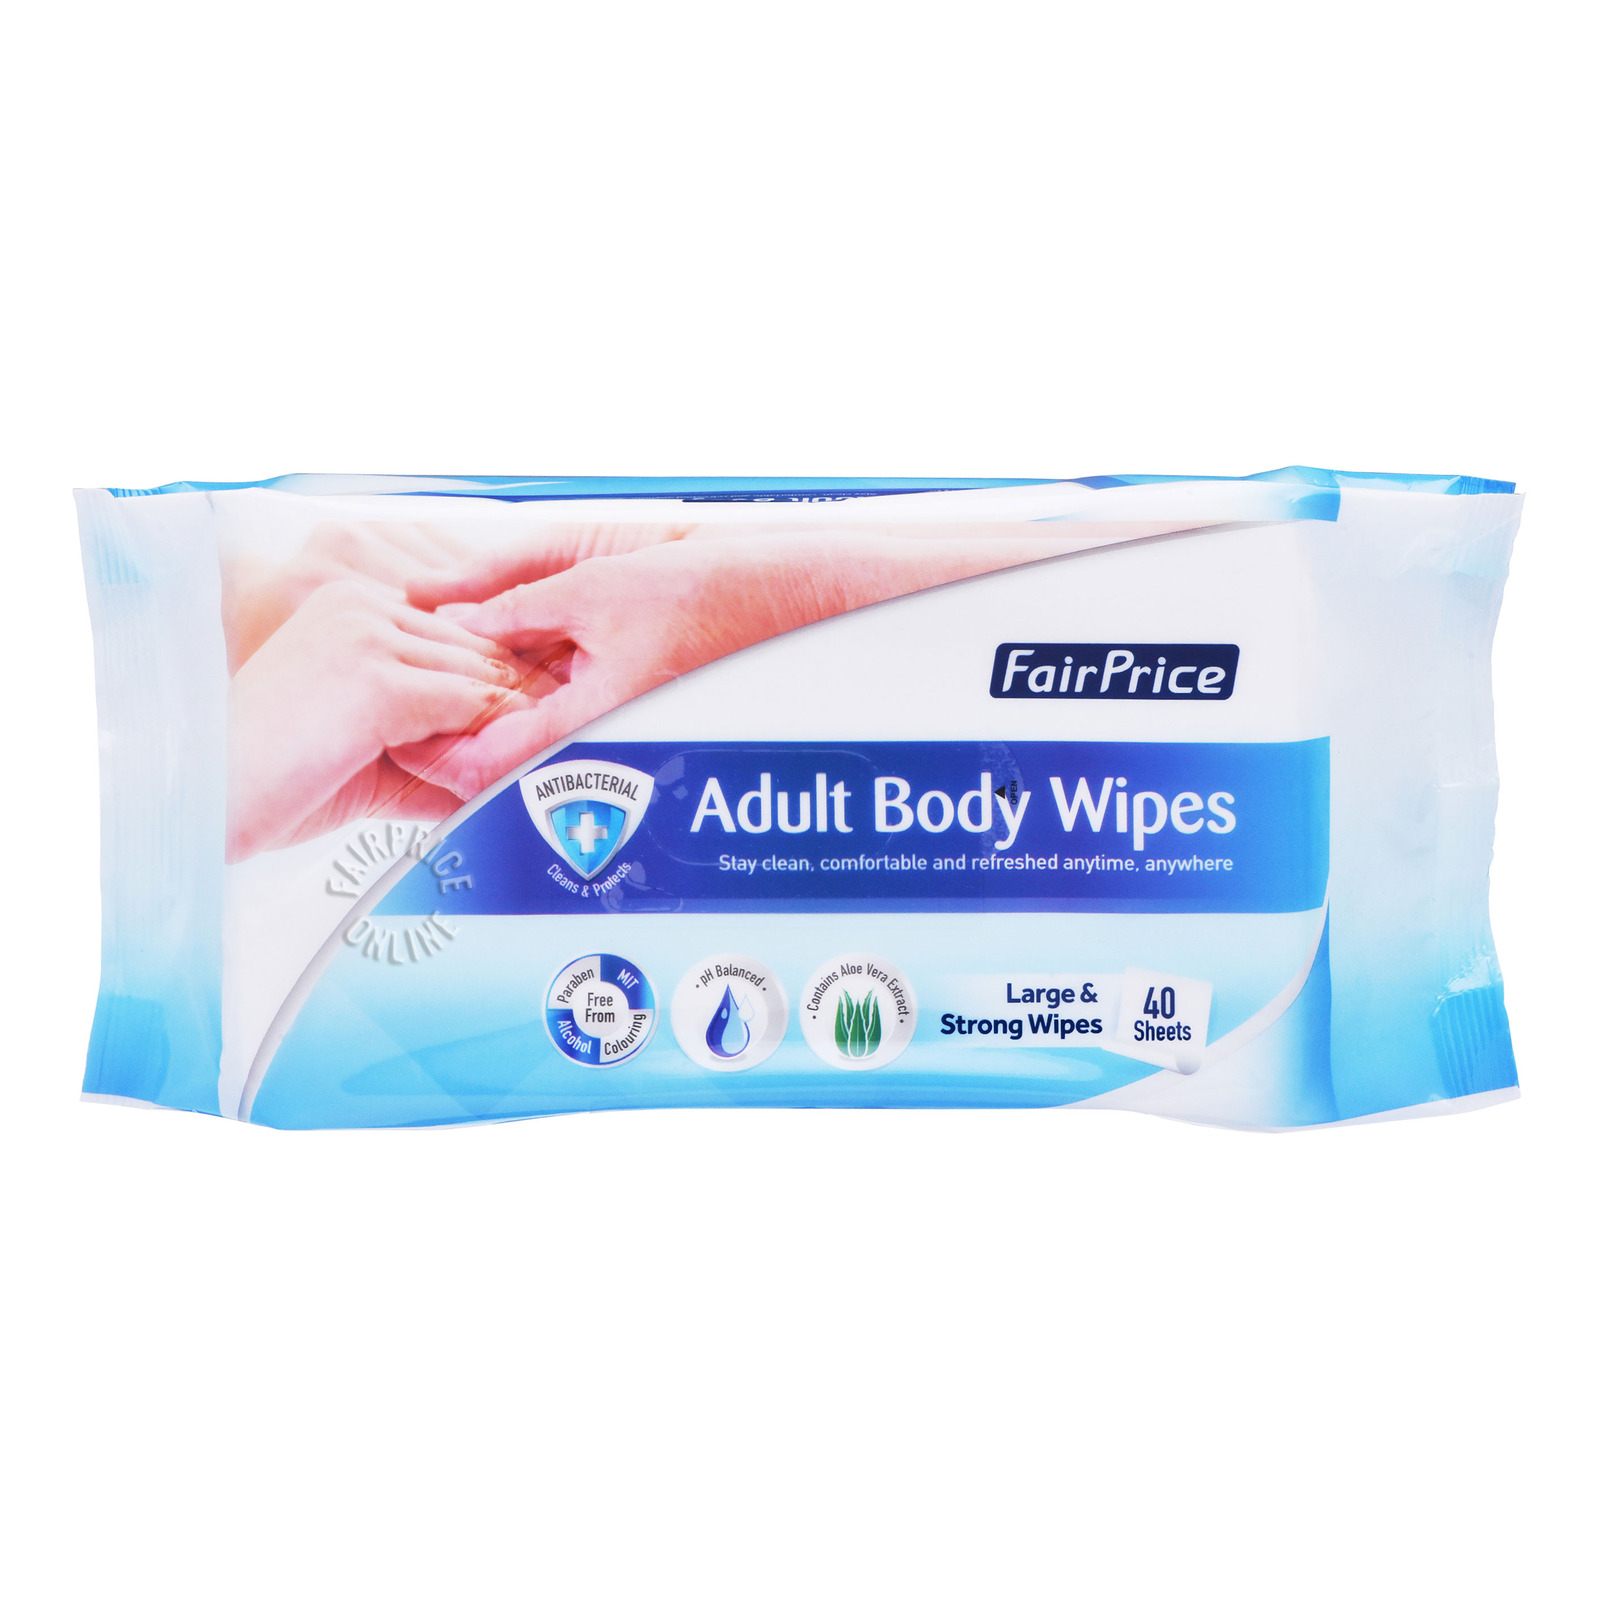 FairPrice Adult Body Wipes